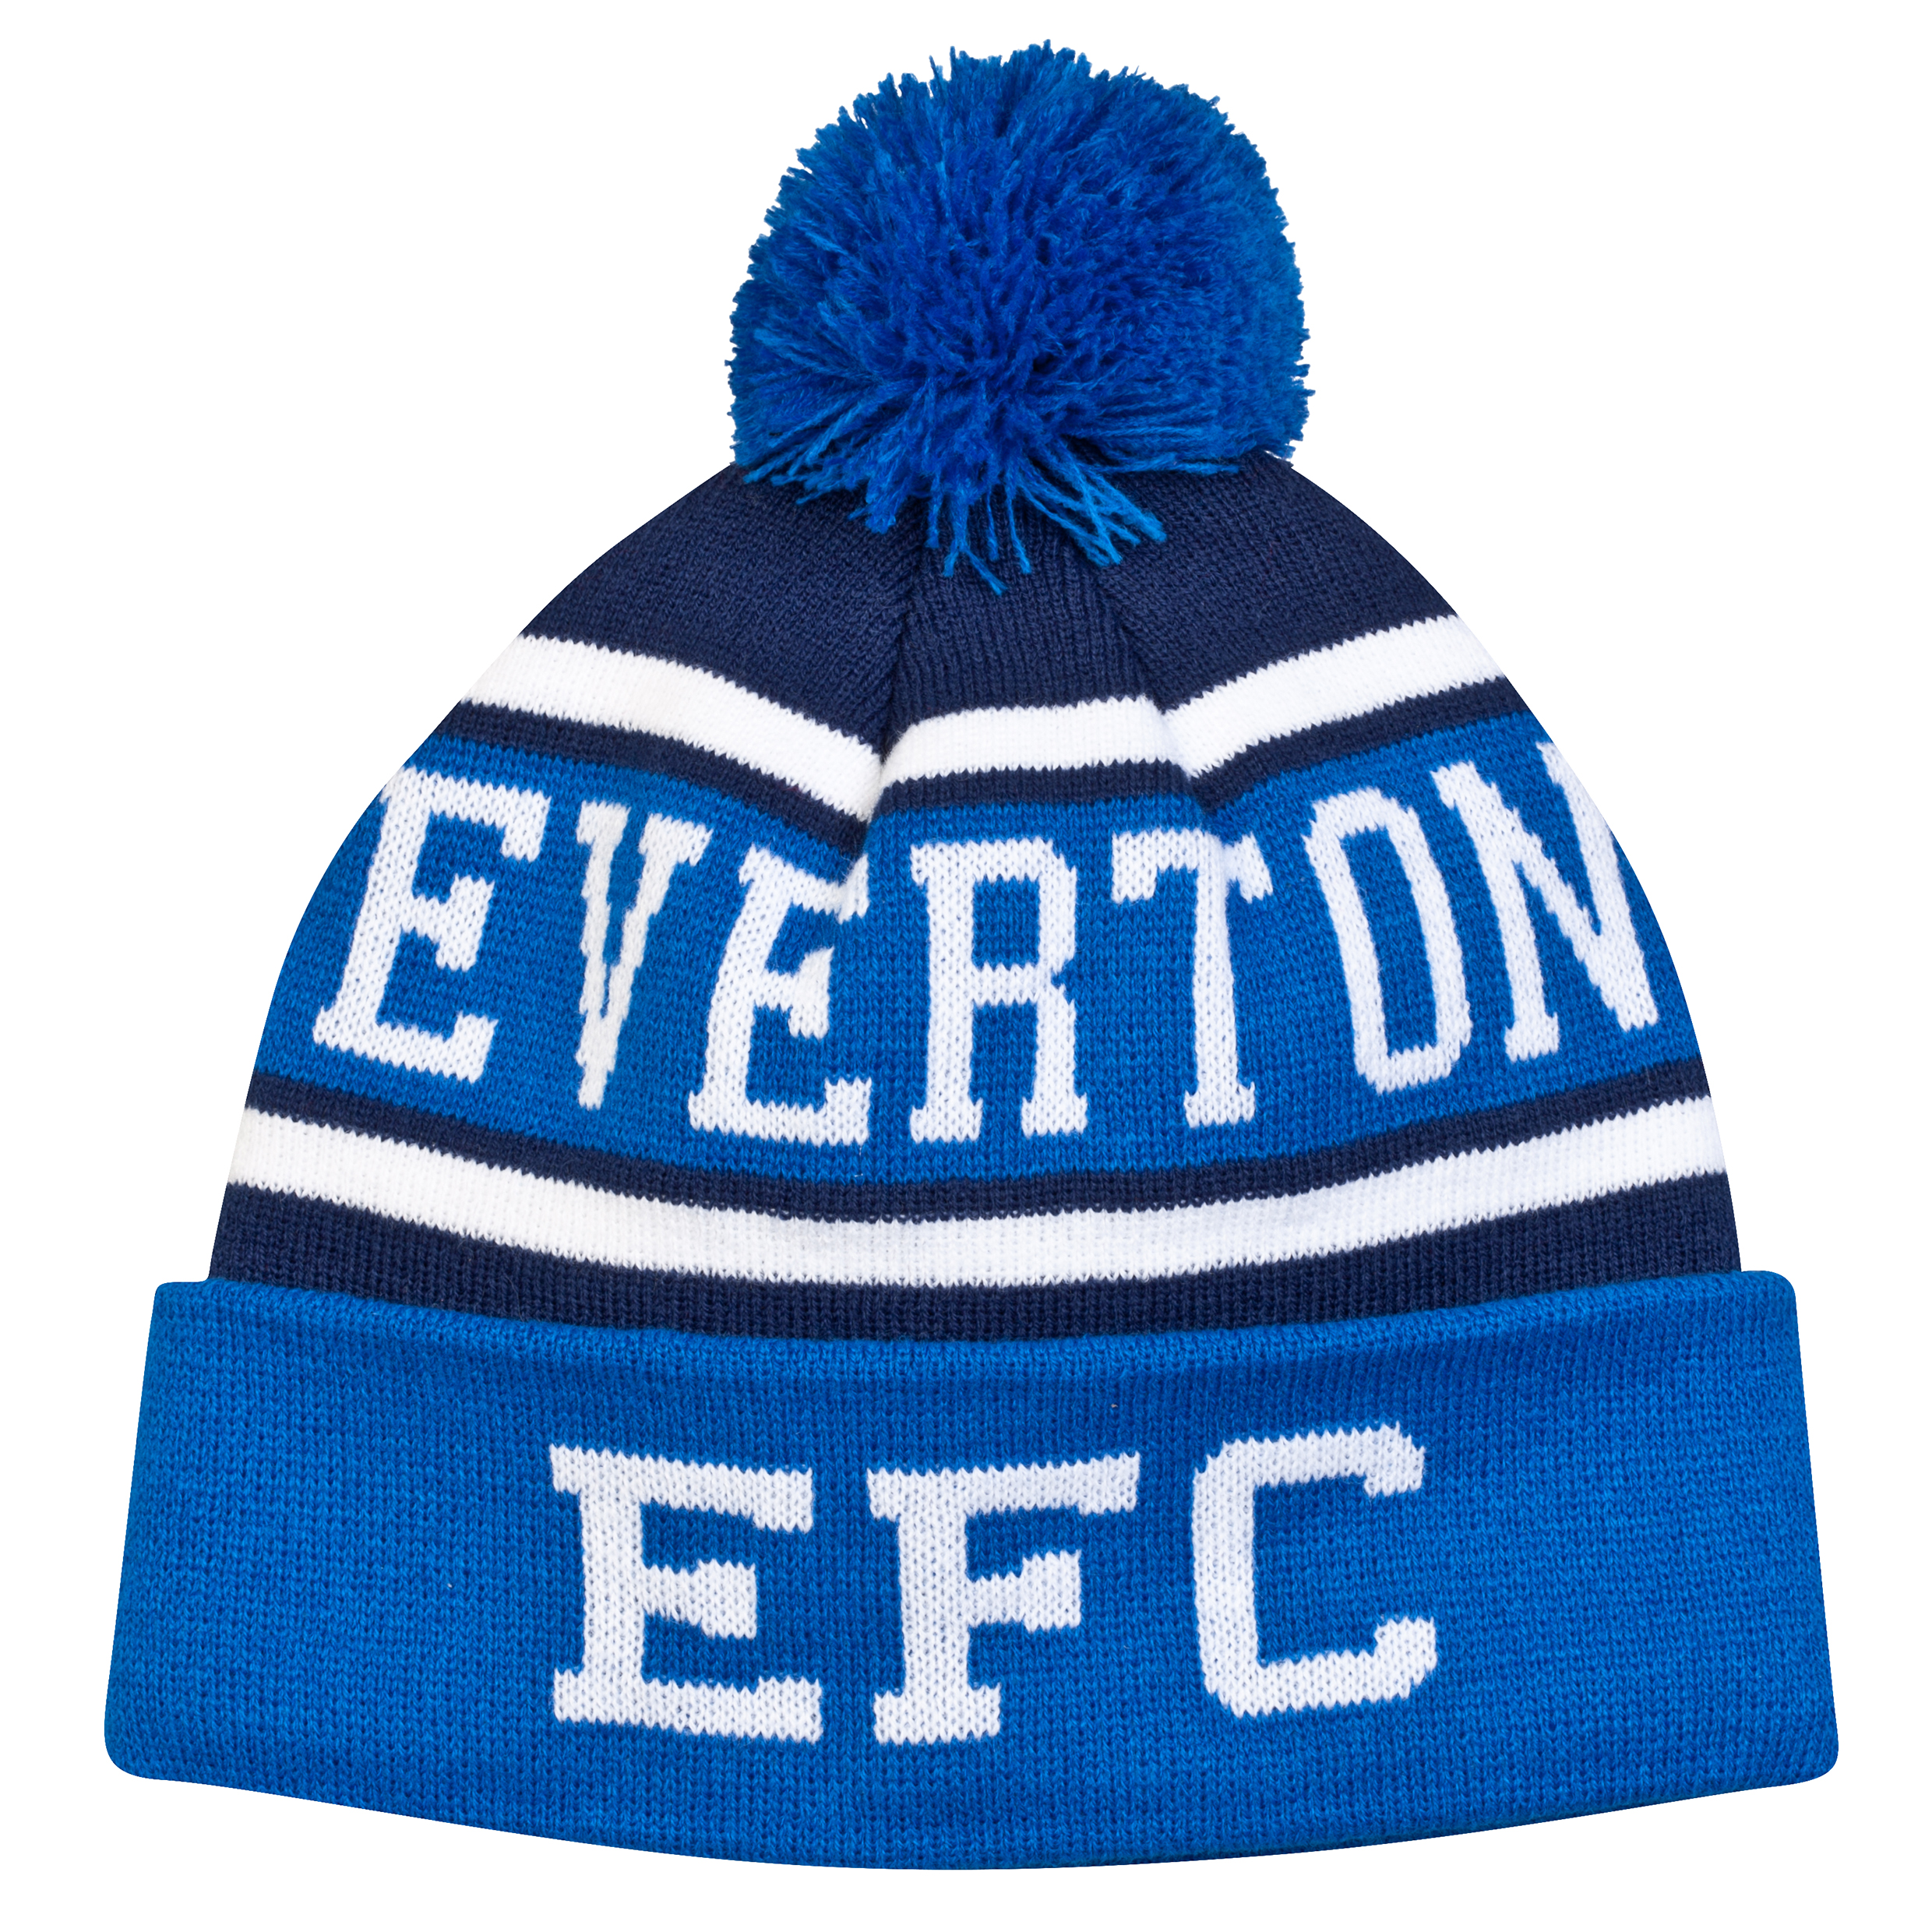 Everton Bobble Hat - Royal Blue/Navy - Adult